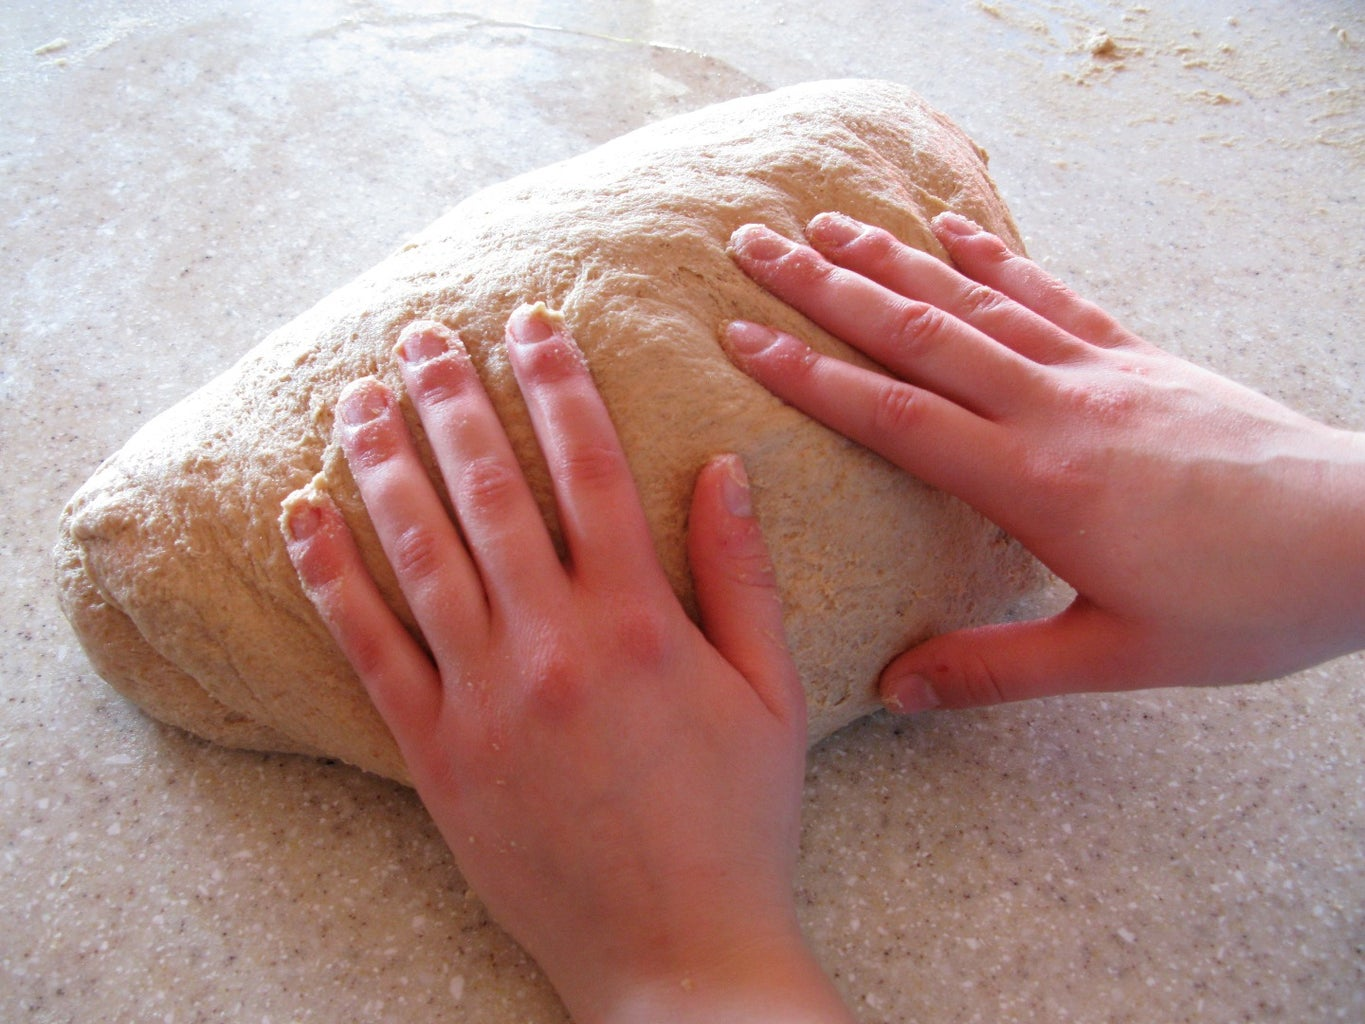 Grind, Mix, Knead, Shape, Rise, Bake (without Bosch)